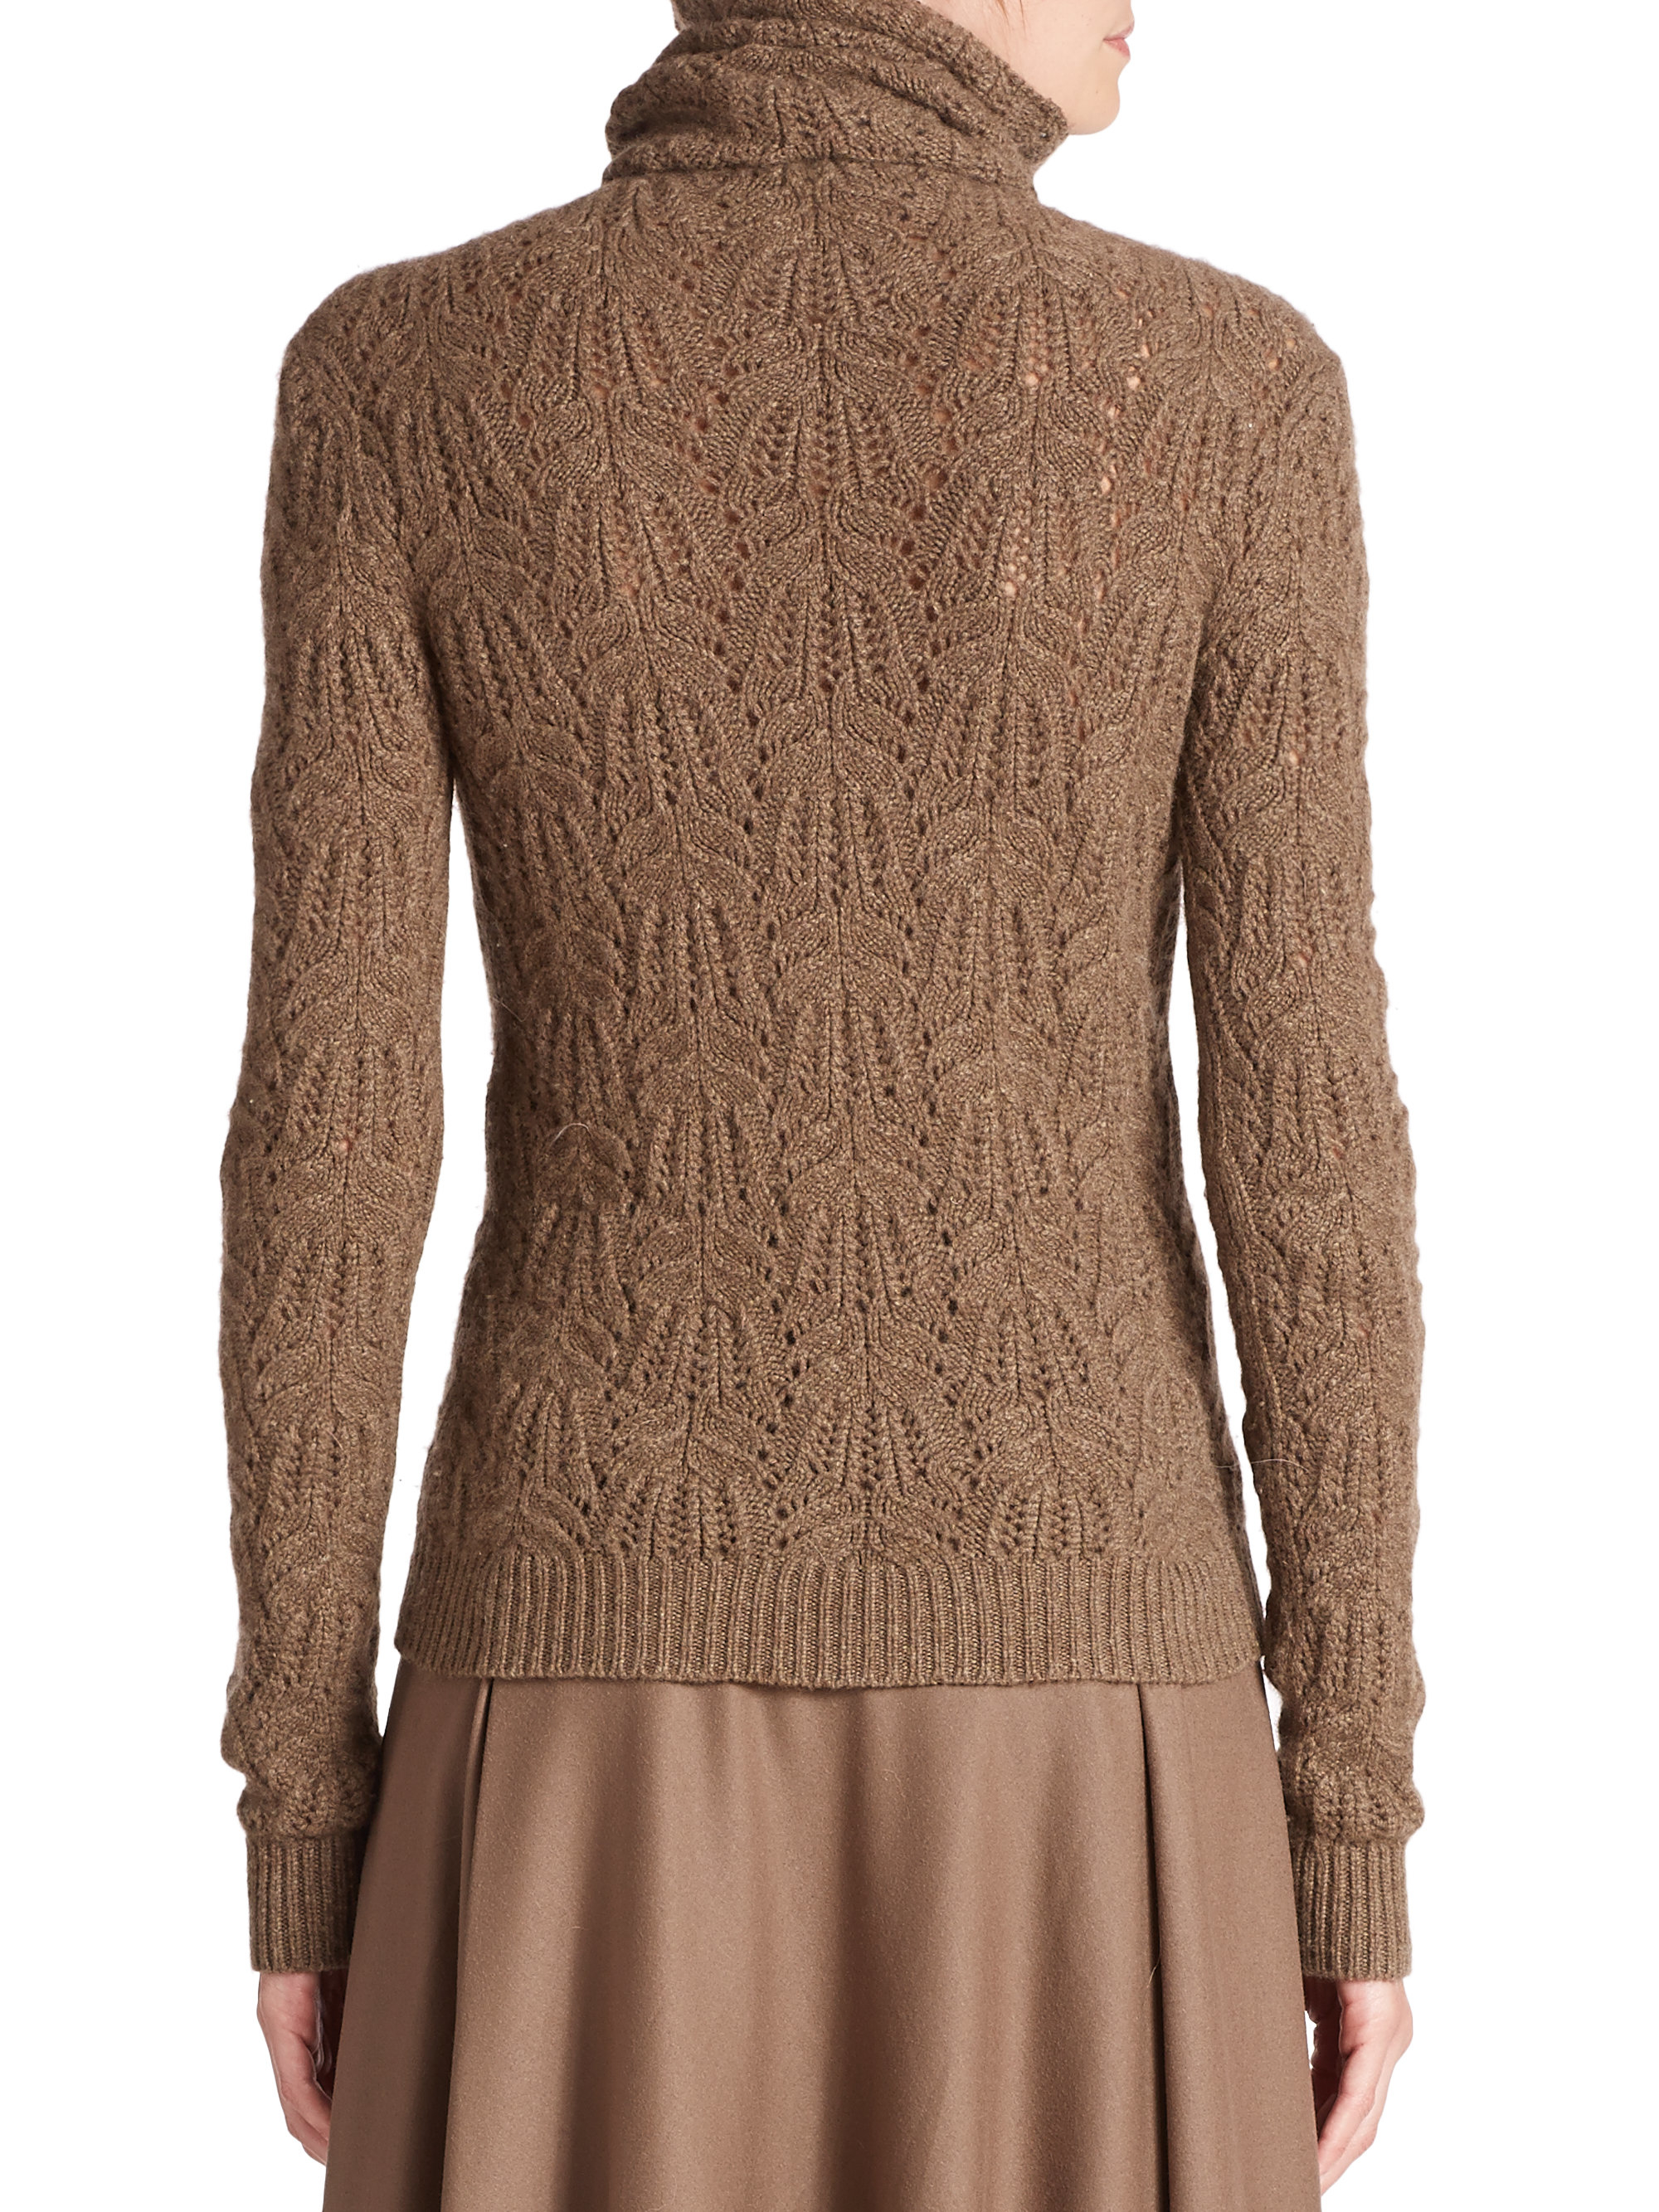 Ralph lauren Cashmere Crochet Turtleneck Sweater in Brown | Lyst